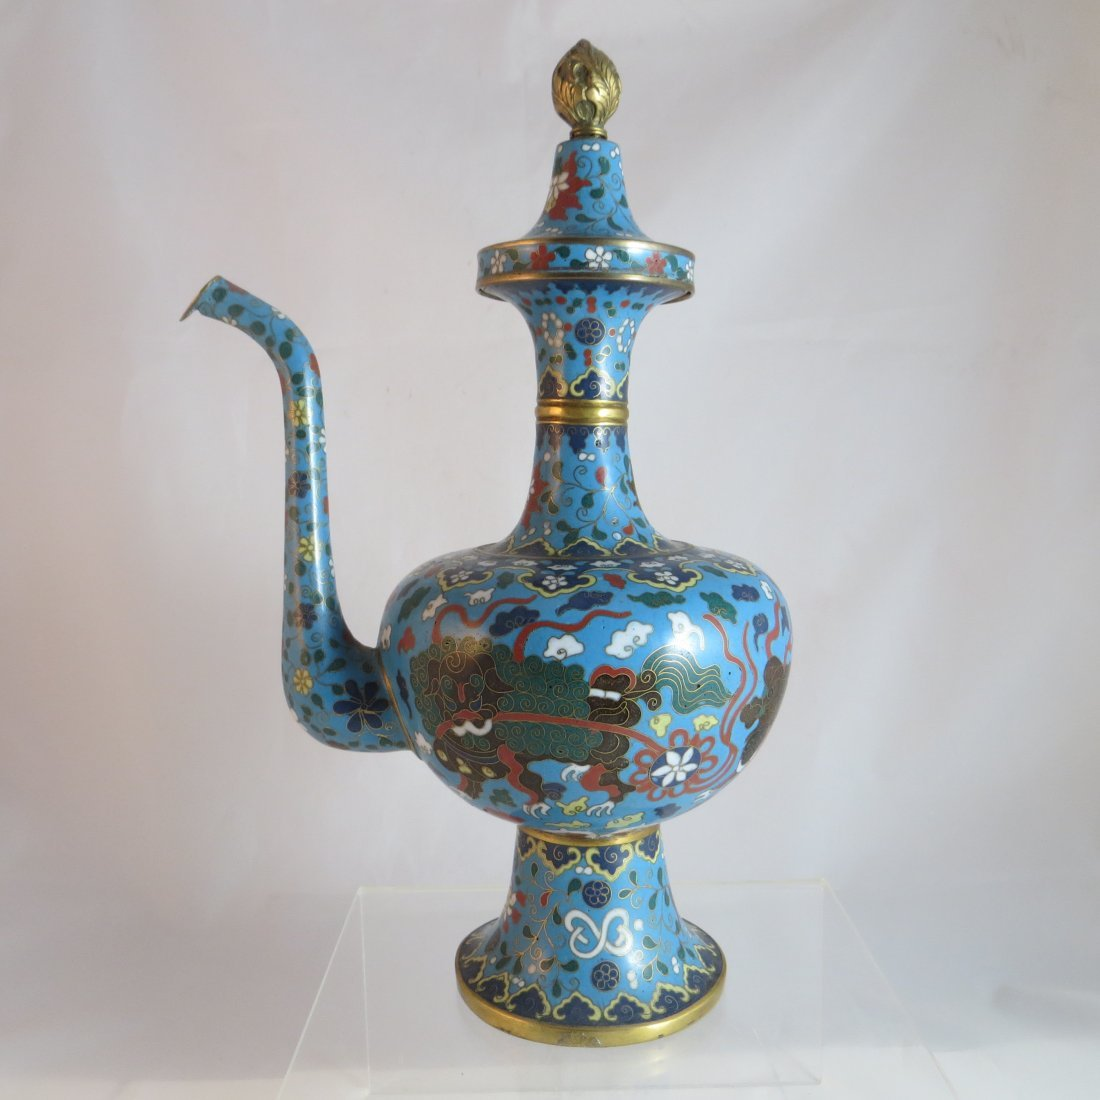 Chinese Qing Dynasty Cloisonne Tea/Coffee Pot - 2